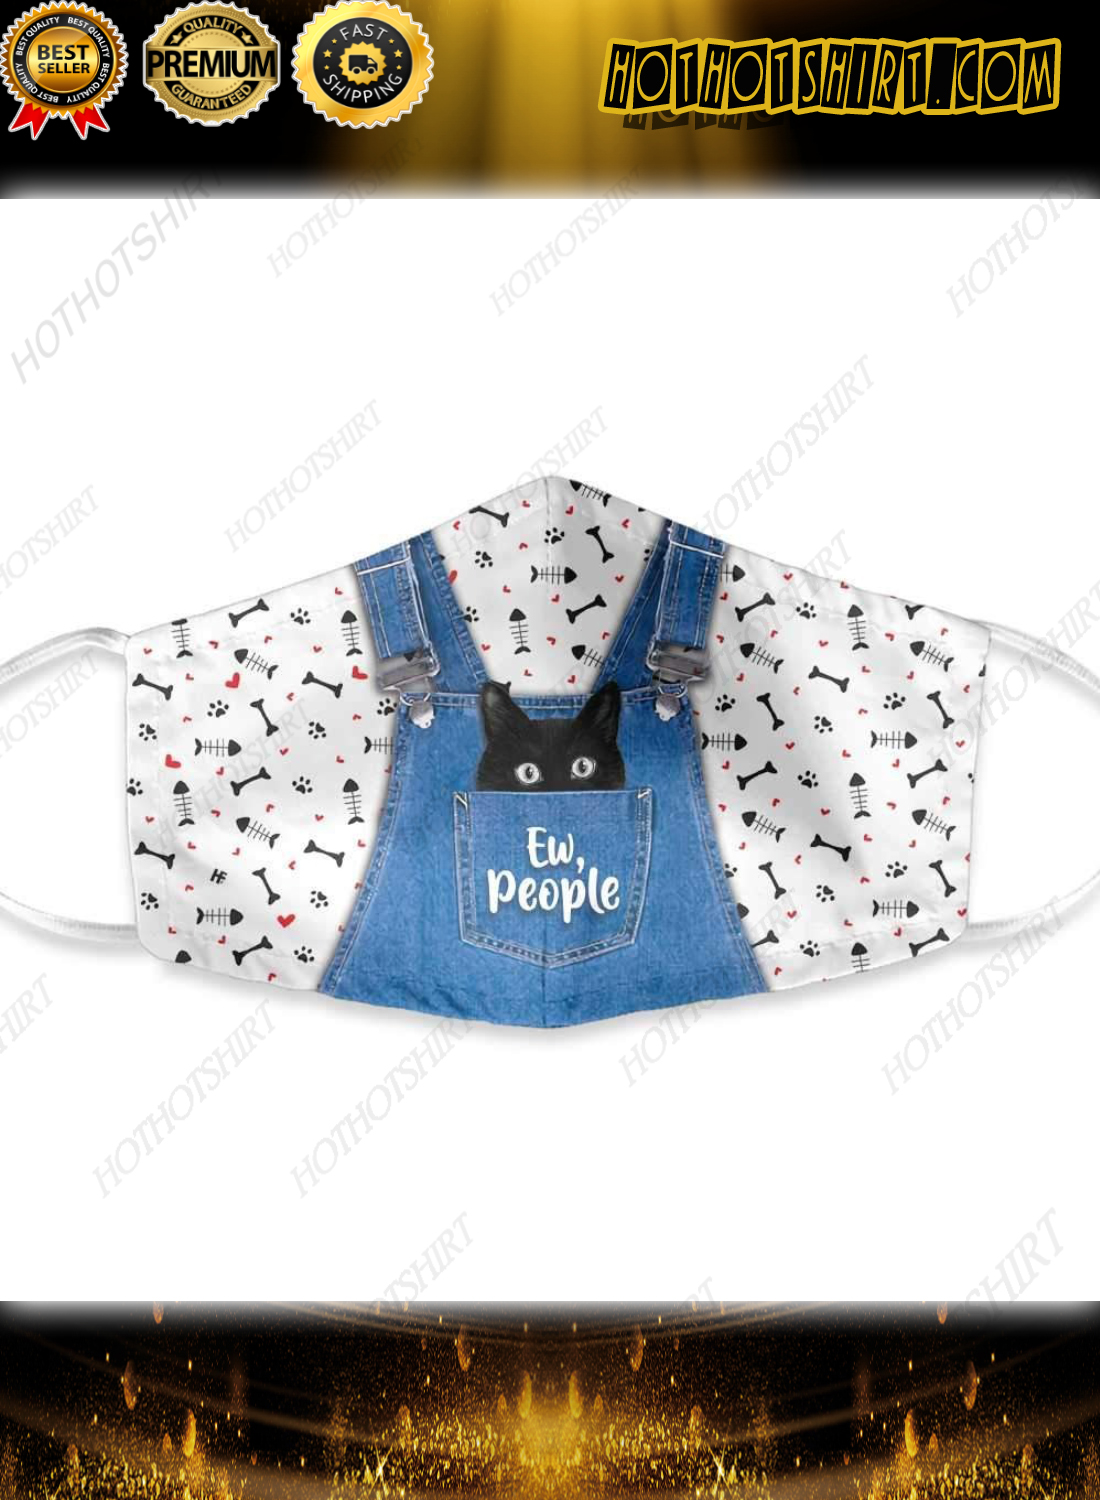 Cat ew people dungarees face mask